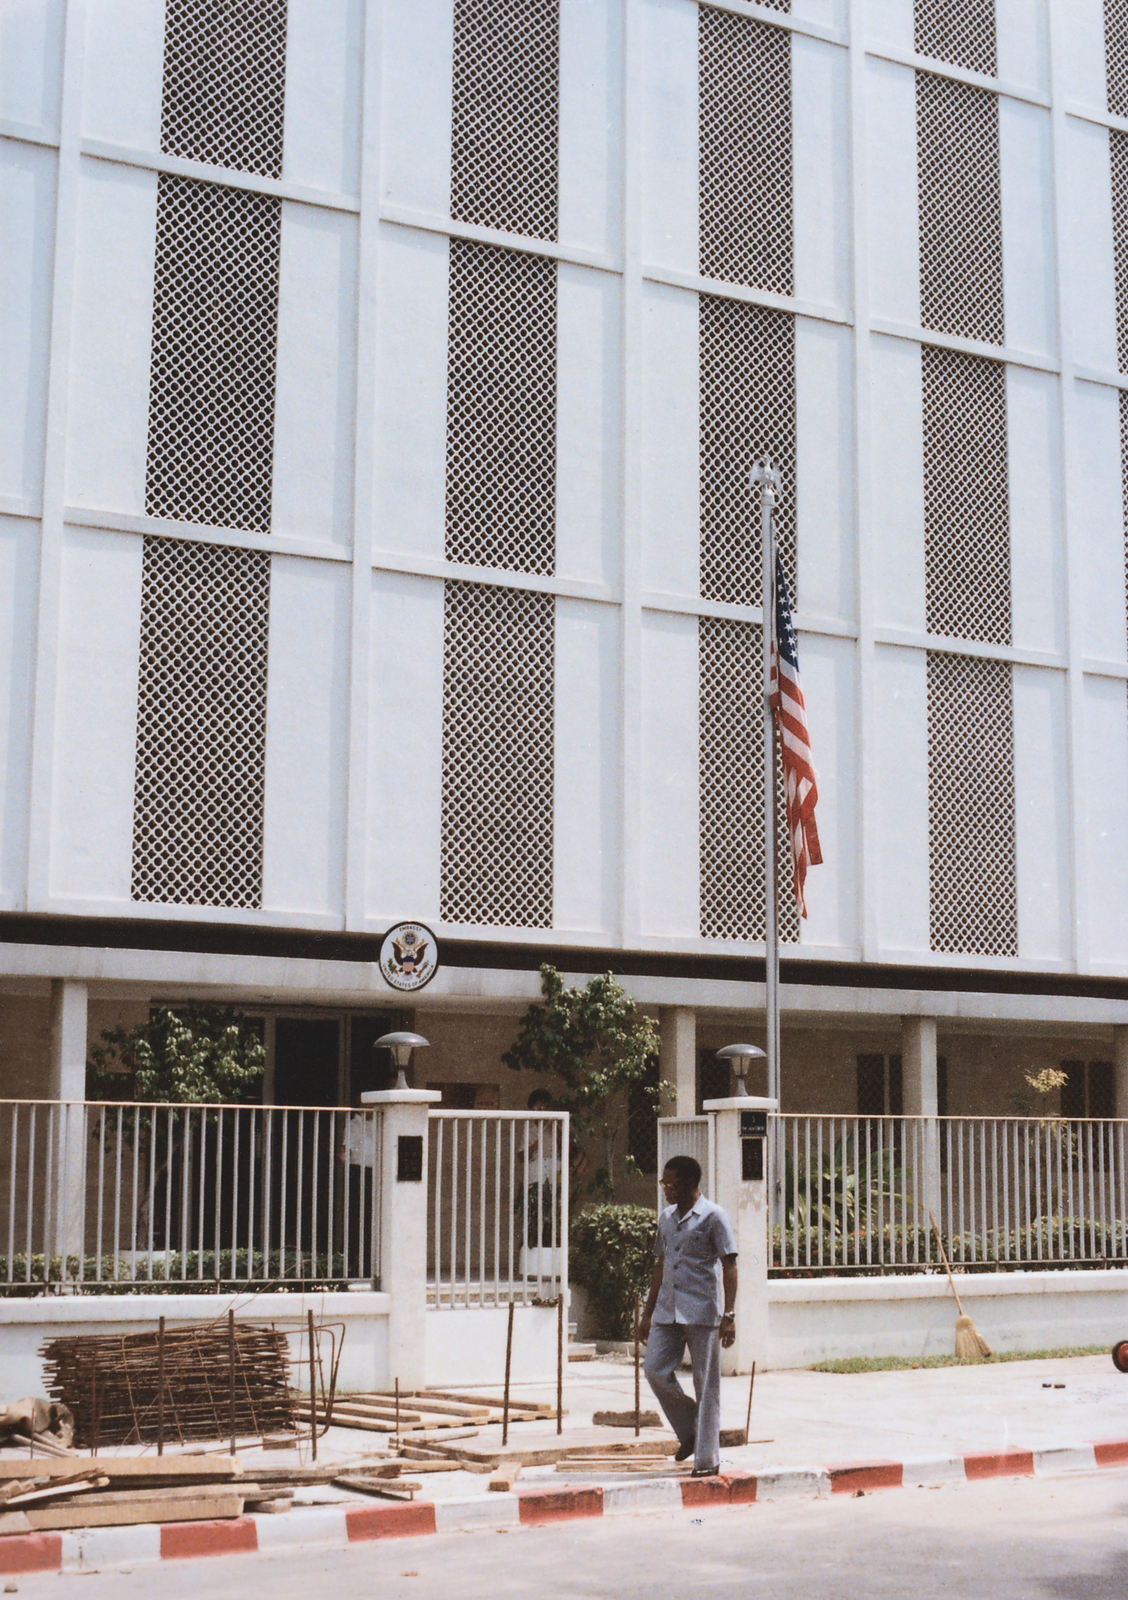 Abidjan - Chancery Office Building - 1985